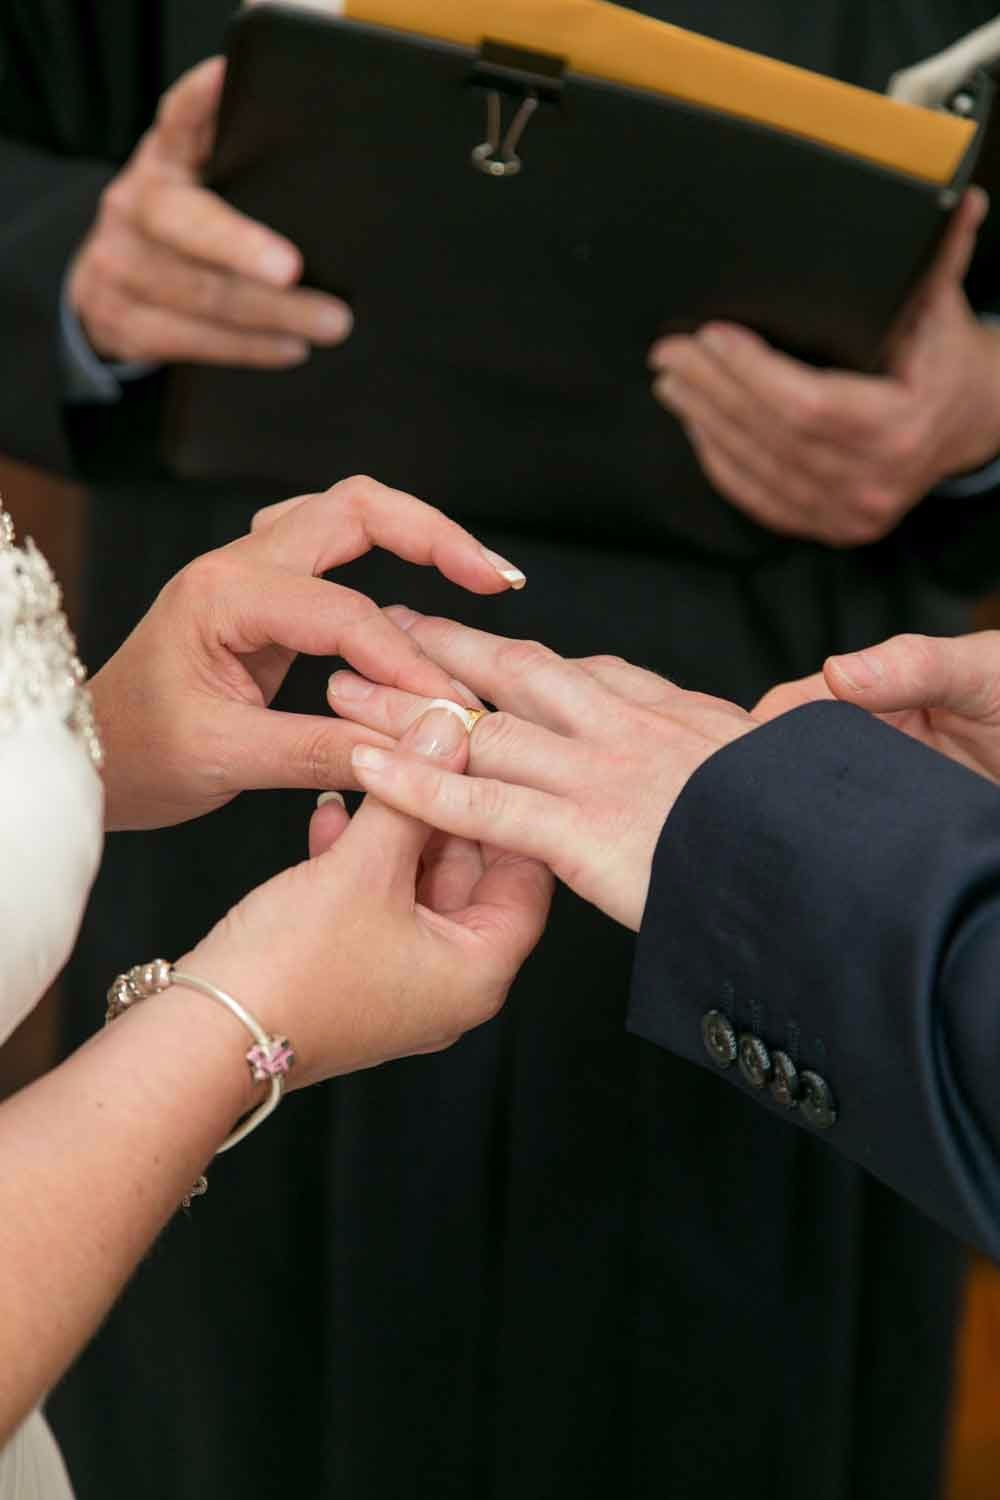 Exchanging rings at the Winter Park Wedding Chapel